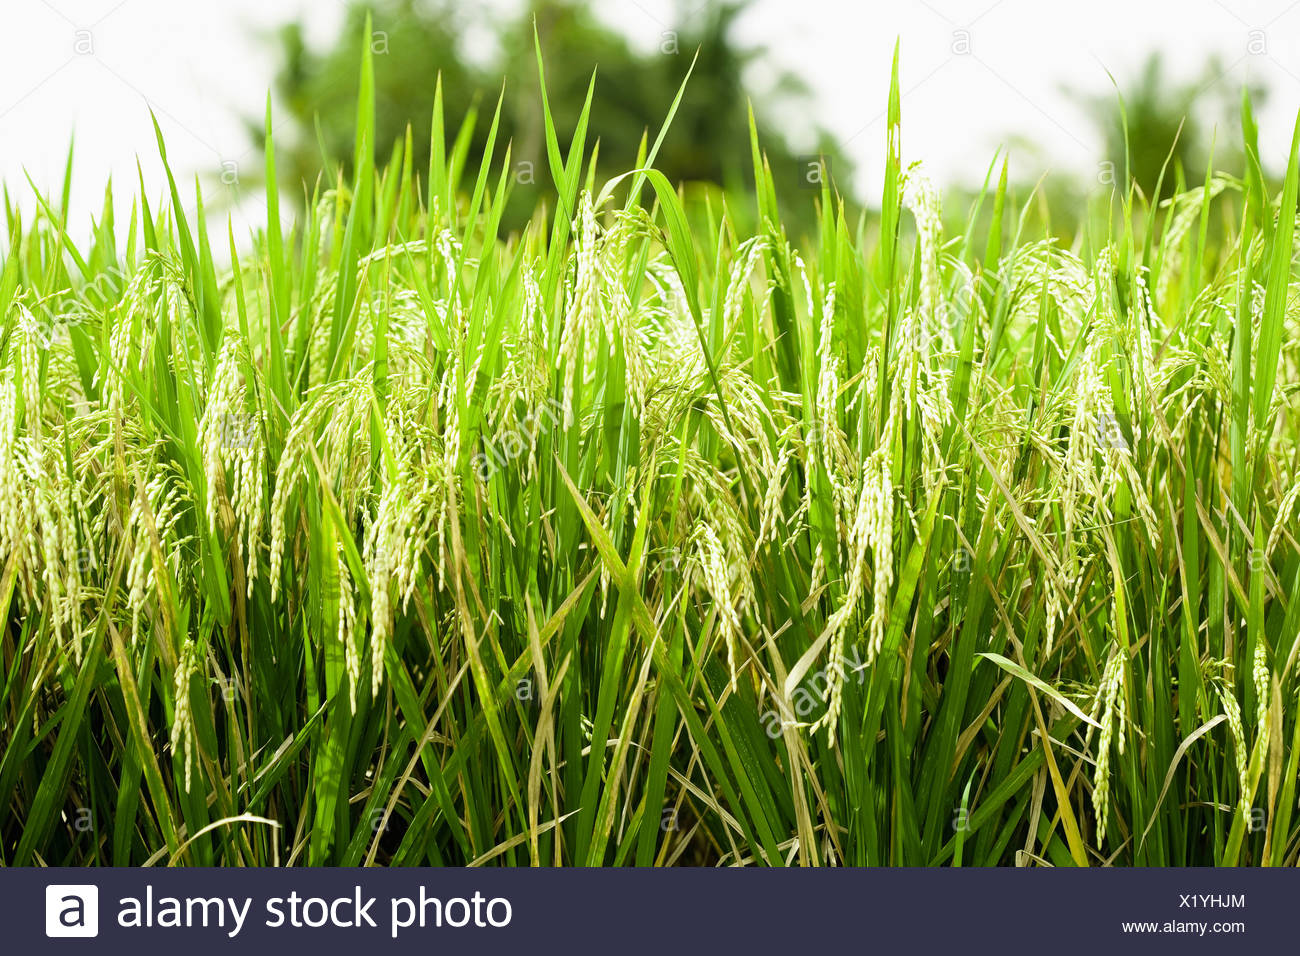 Asia, Indonesia, Bali, Blades of grass, close-up - Stock Image